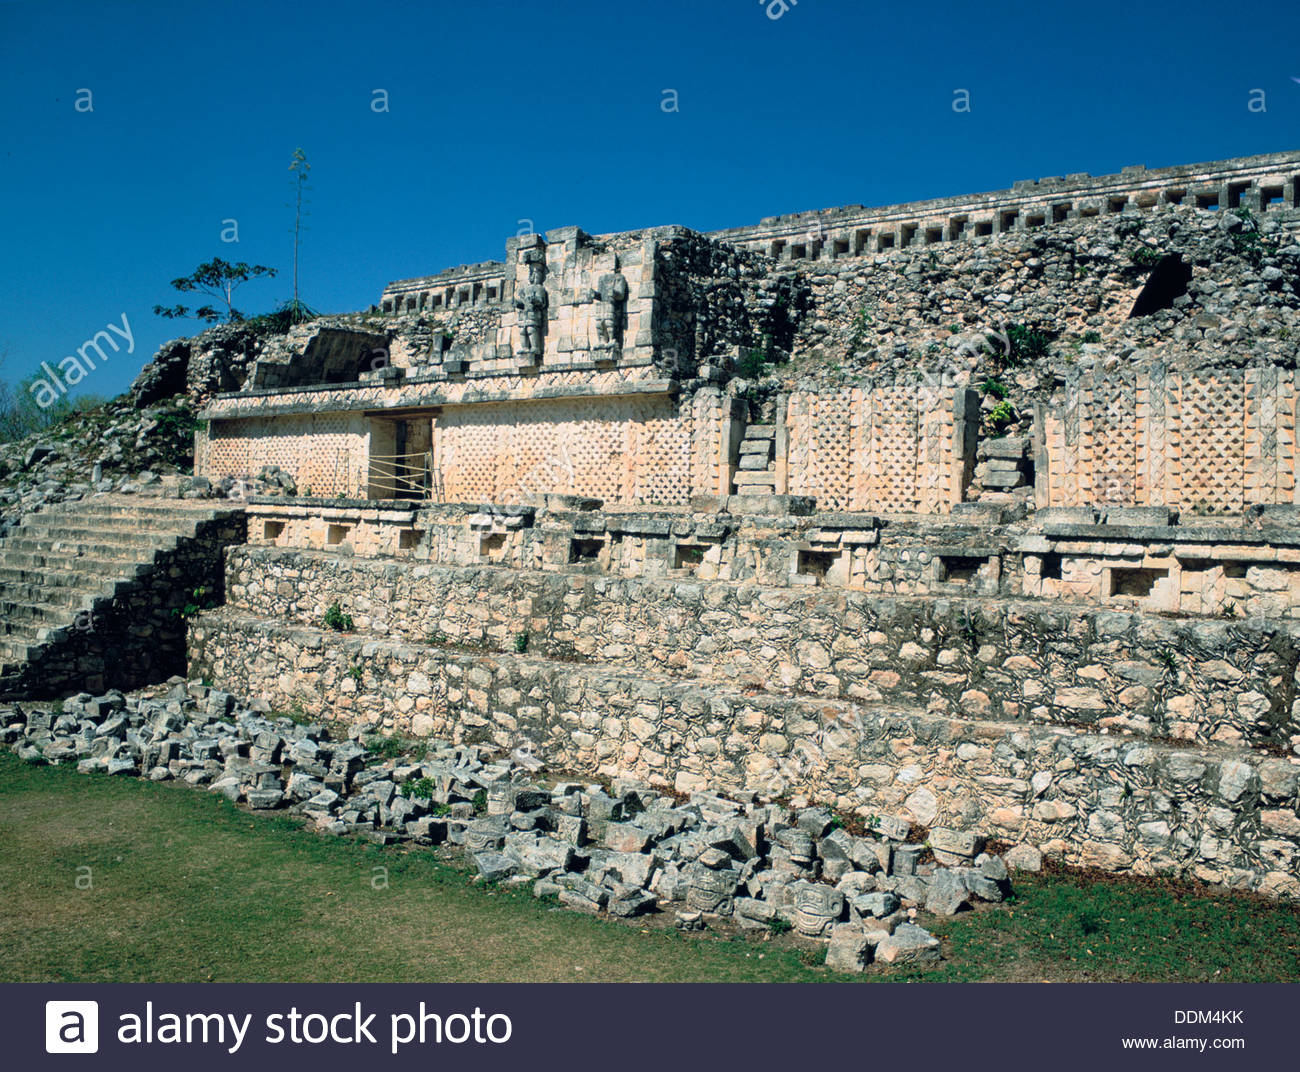 Palace of the Masks, Kabah, Yucatan, Mexico. Artist: Dr Stephen Coyne - Stock Image